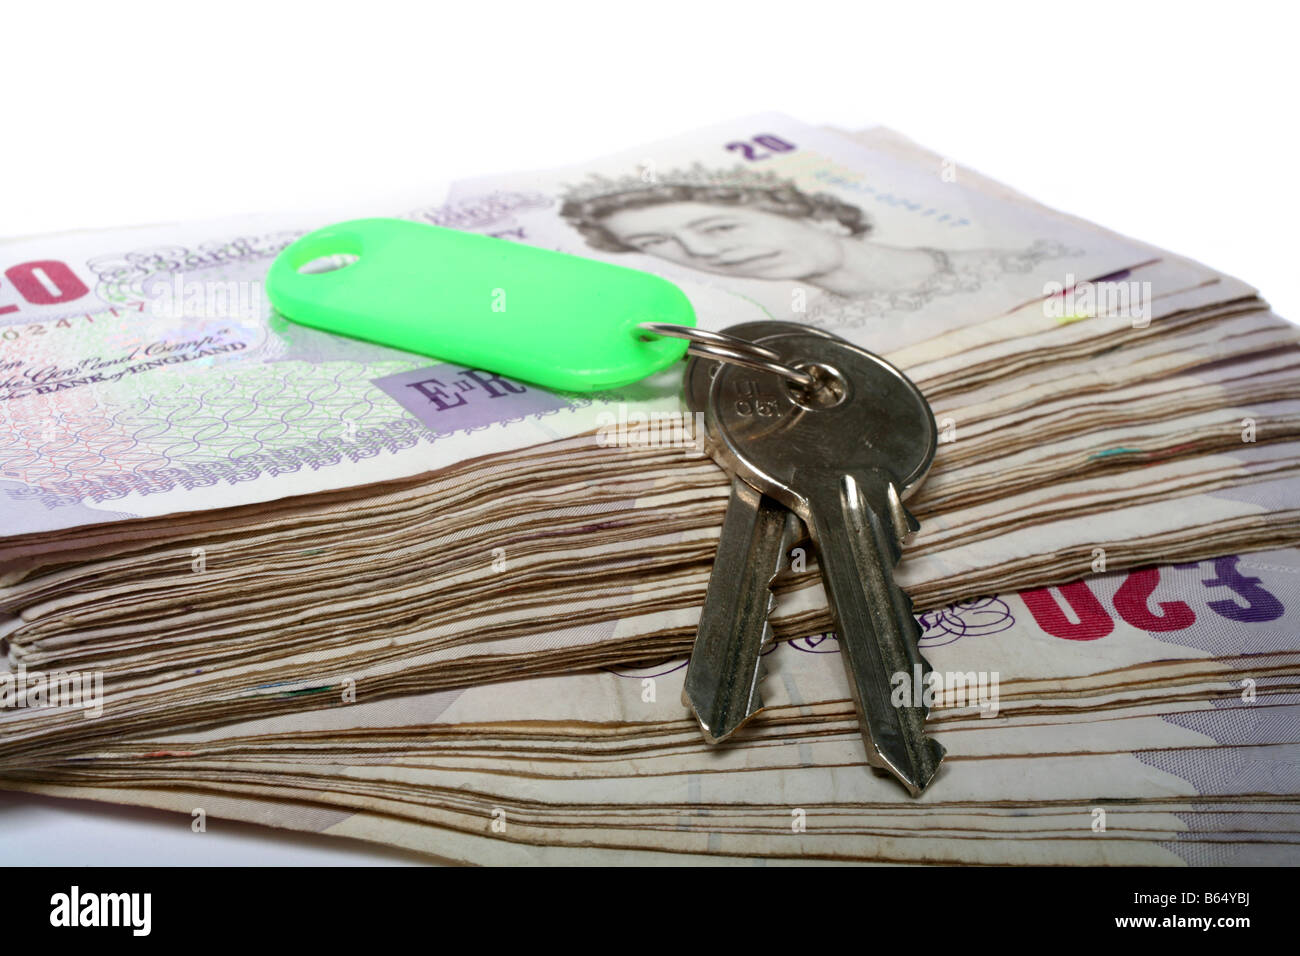 A set of house keys resting on a big pile of used 20 pound notes perhaps a rent or mortgage payment or the keys - Stock Image